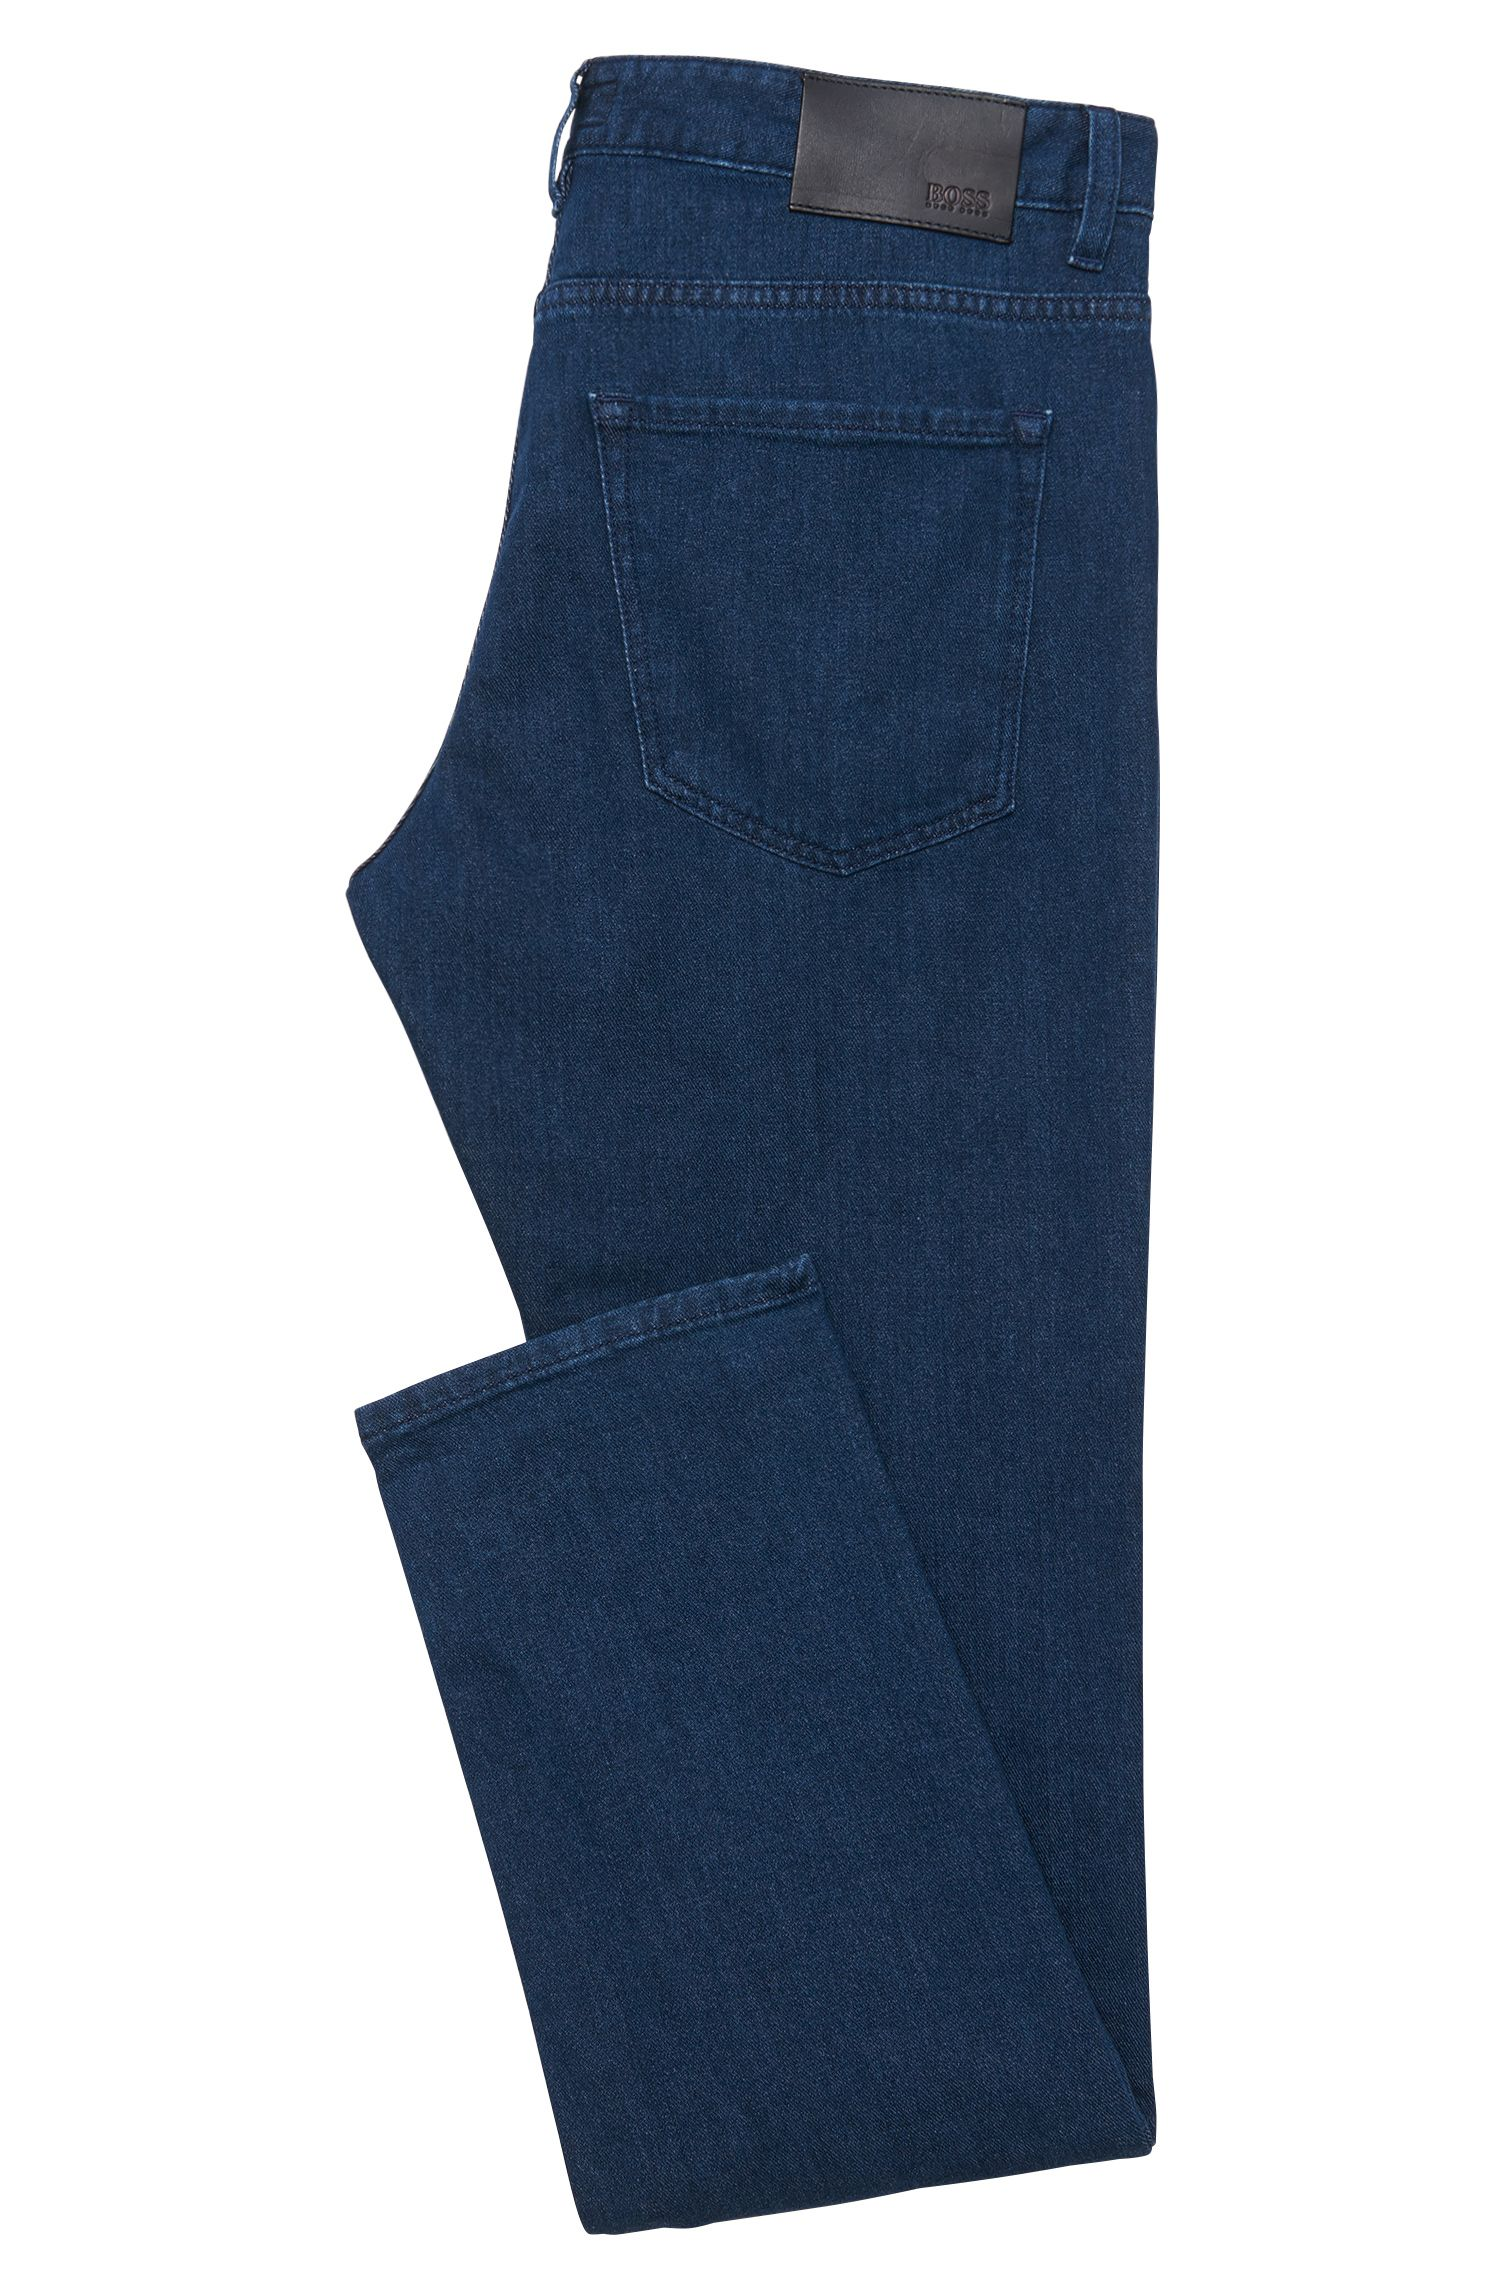 Jeans Slim Fit en coton stretch à la finition rinsed : « Delaware3-1 »